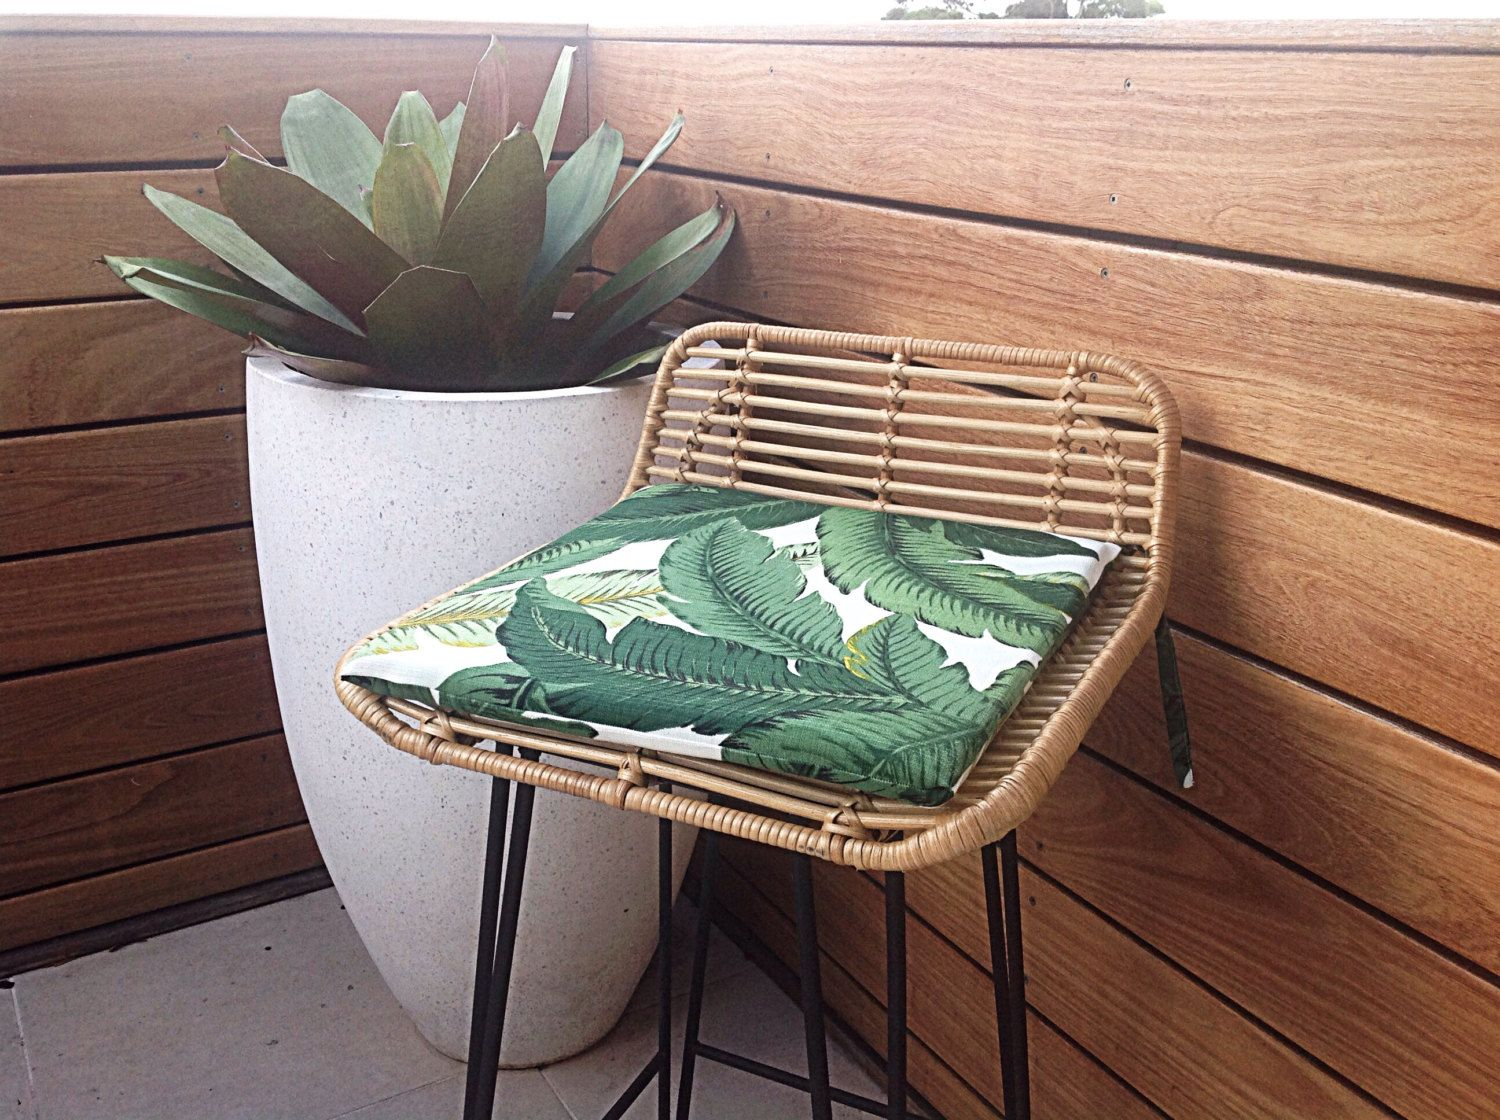 Cushions chair pads and more - Chair Pads Palm Leaf Cushions Banana Leaf Outdoor Cushions Outdoor Pillows Tropical Chair